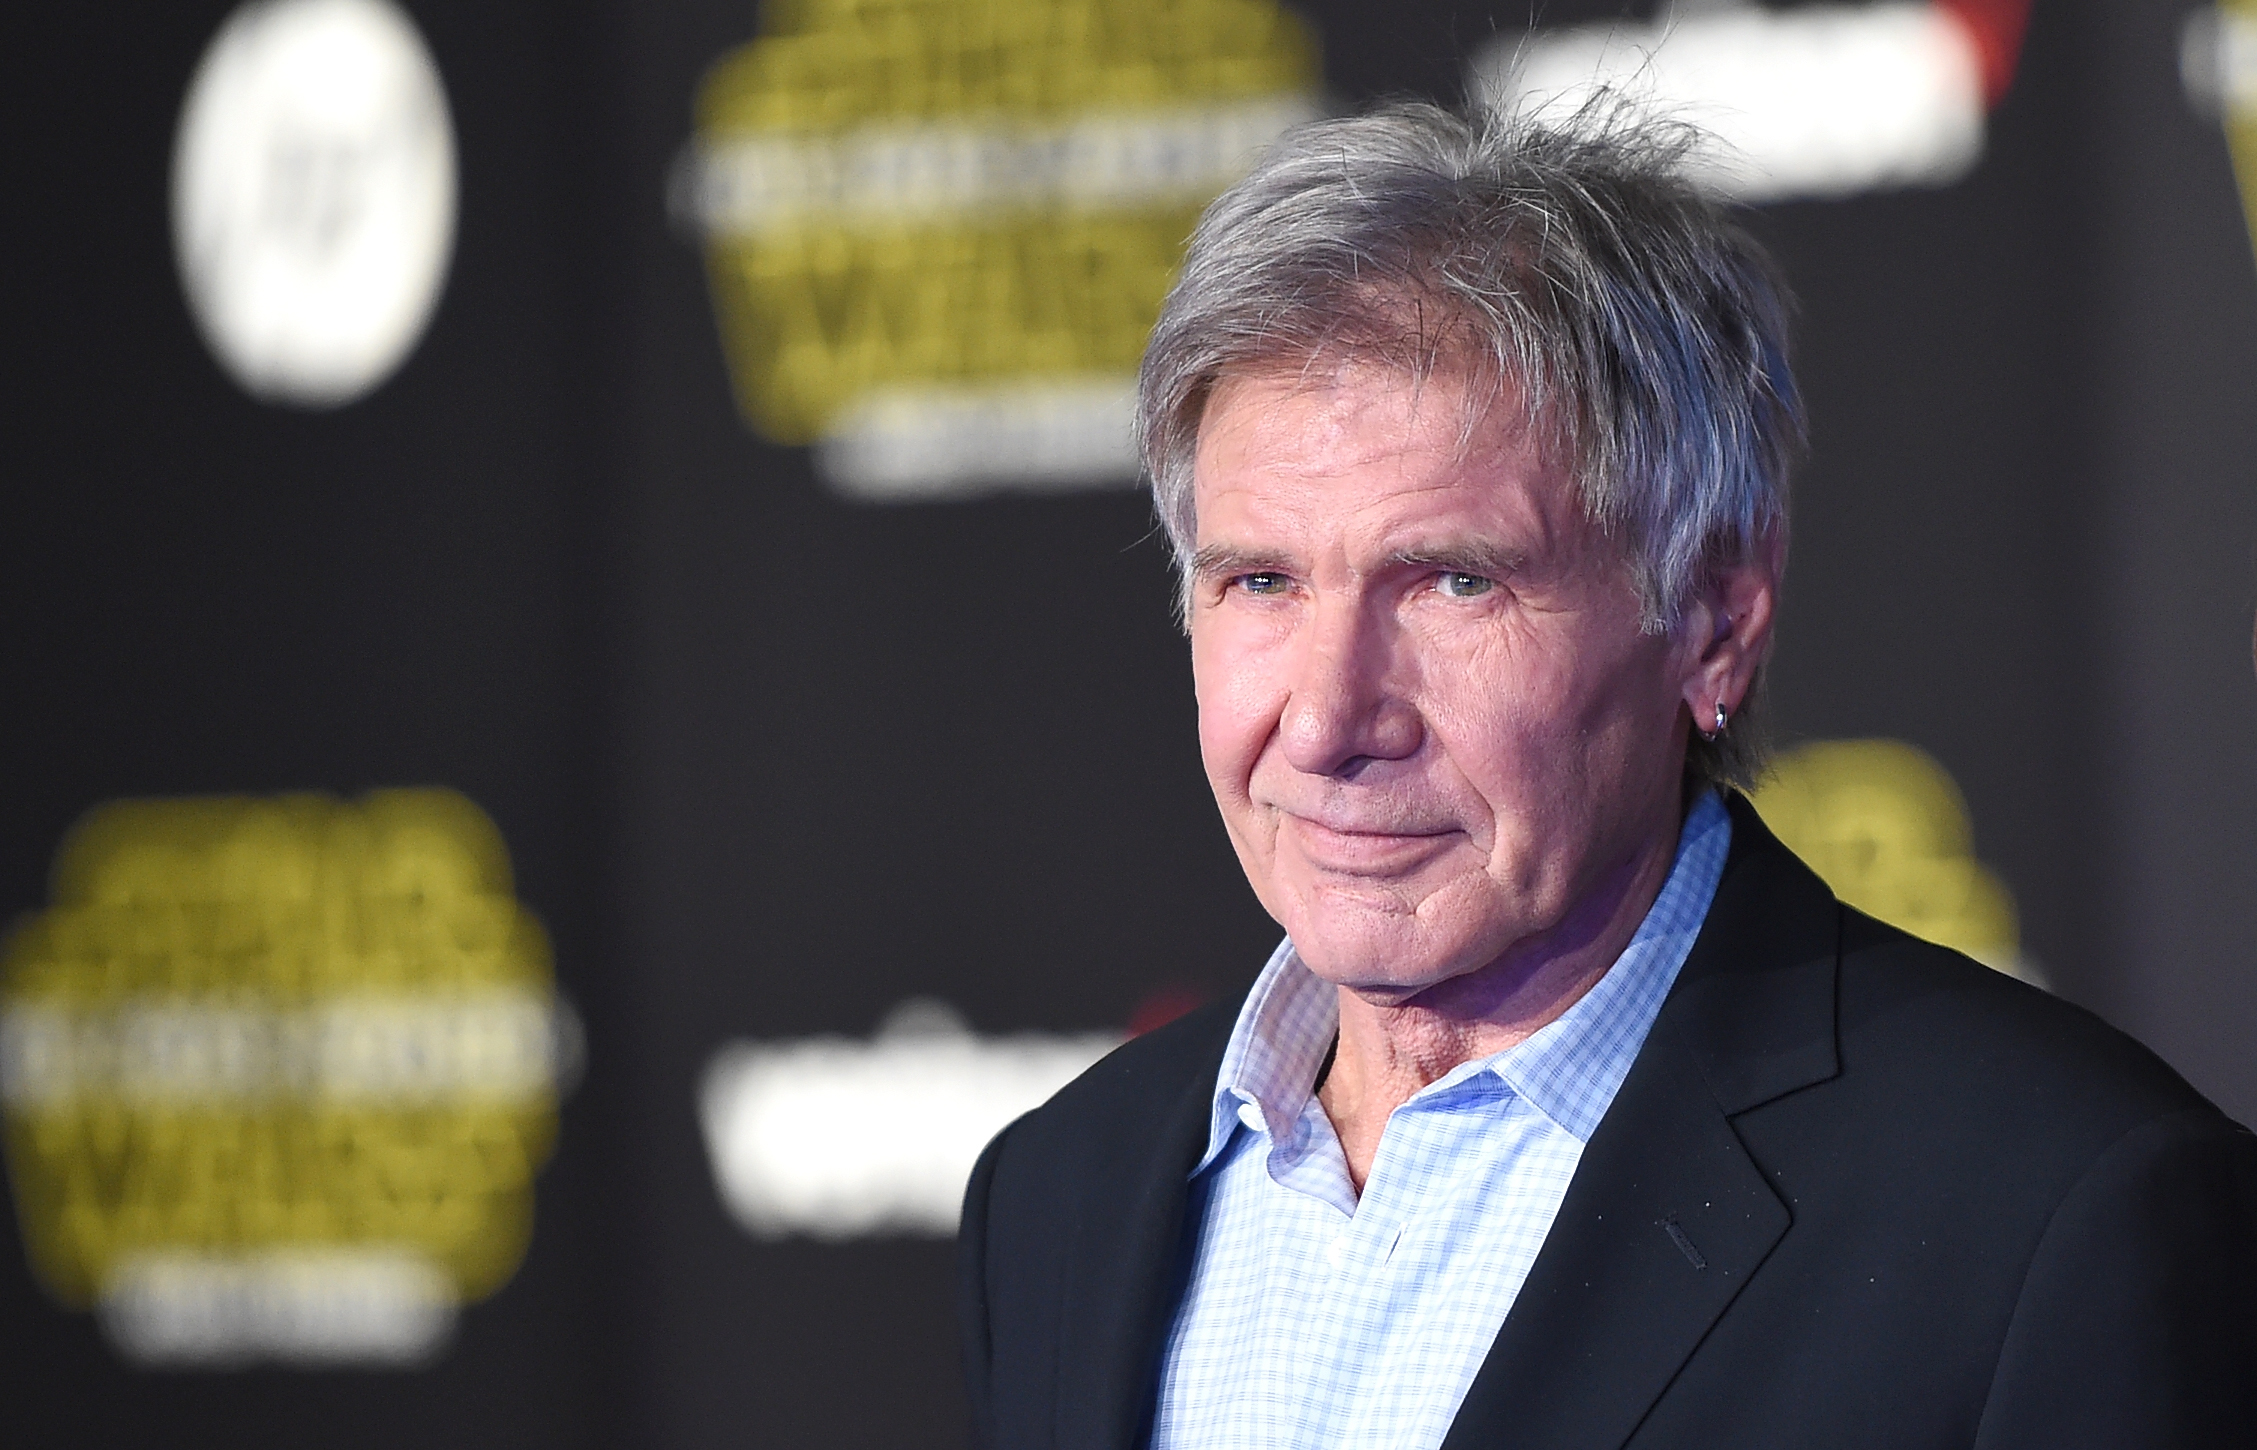 Actor Harrison Ford attends the Premiere of Walt Disney Pictures and Lucasfilm's 'Star Wars: The Force Awakens' on December 14, 2015 in Hollywood, Calif.